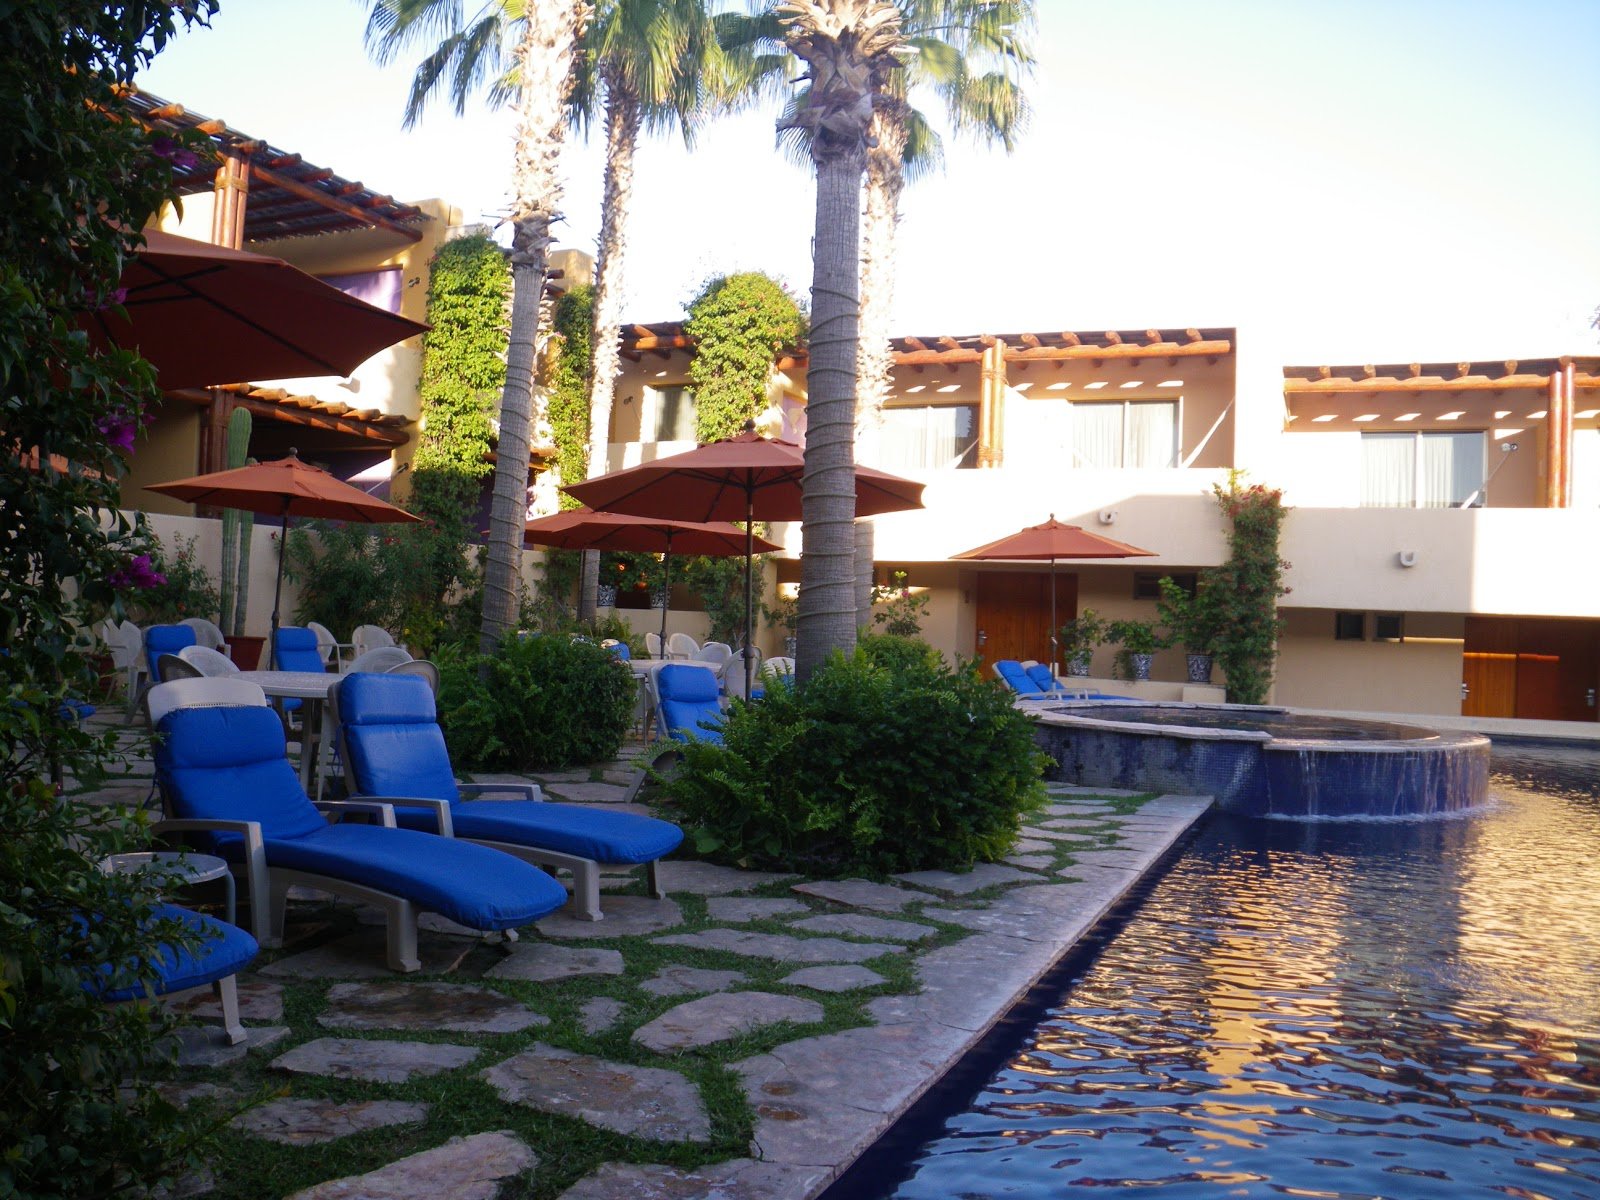 Los Patios Is A Reasonably Priced Hotel Just Out Of Town. I Had Asked Angie  To Find Me Something Between $50 And $80 USD With A Pool And Get Back To Me.